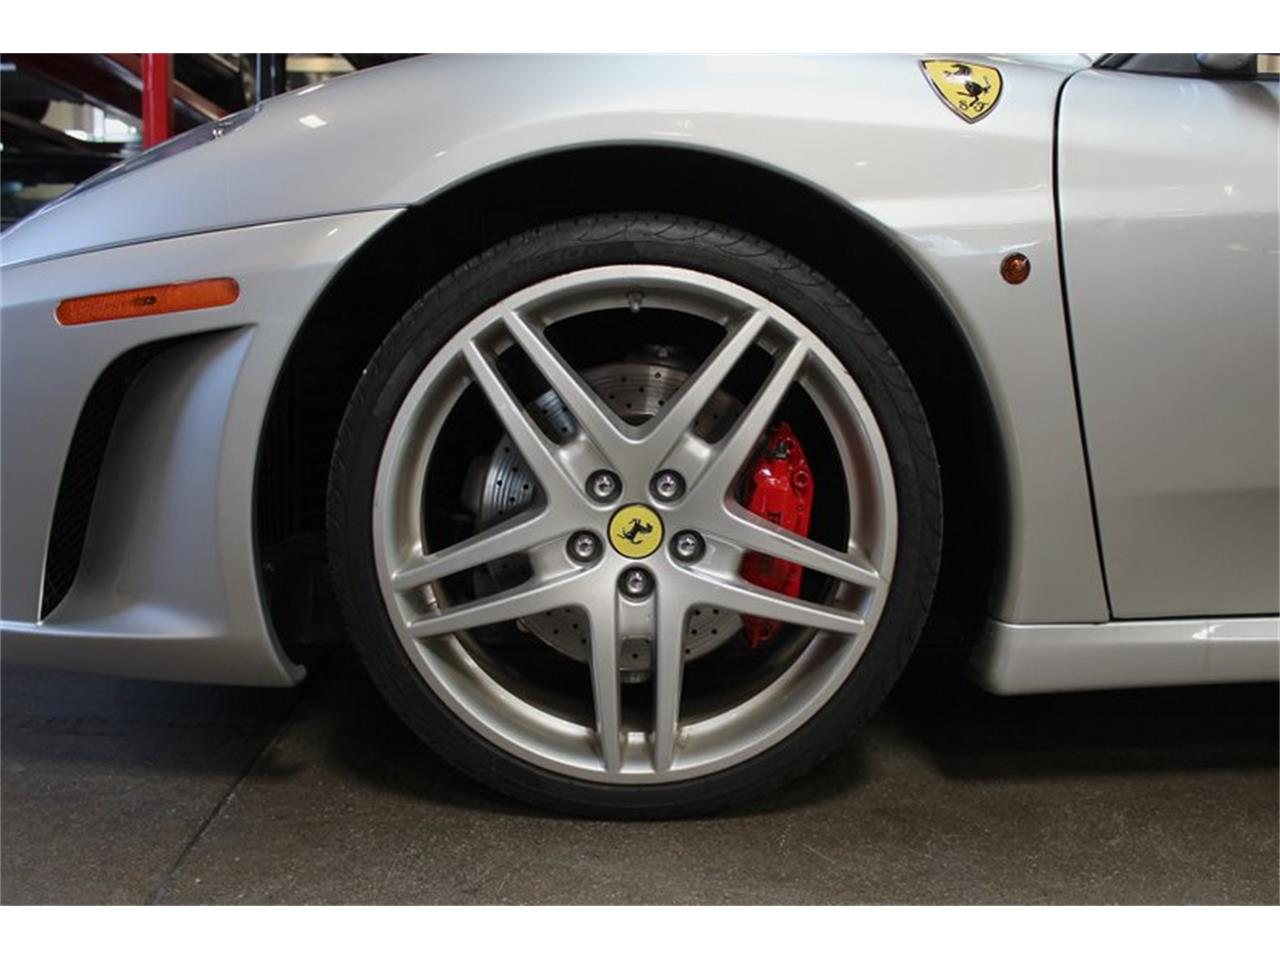 2005 Ferrari F430 for sale in San Carlos, CA – photo 14